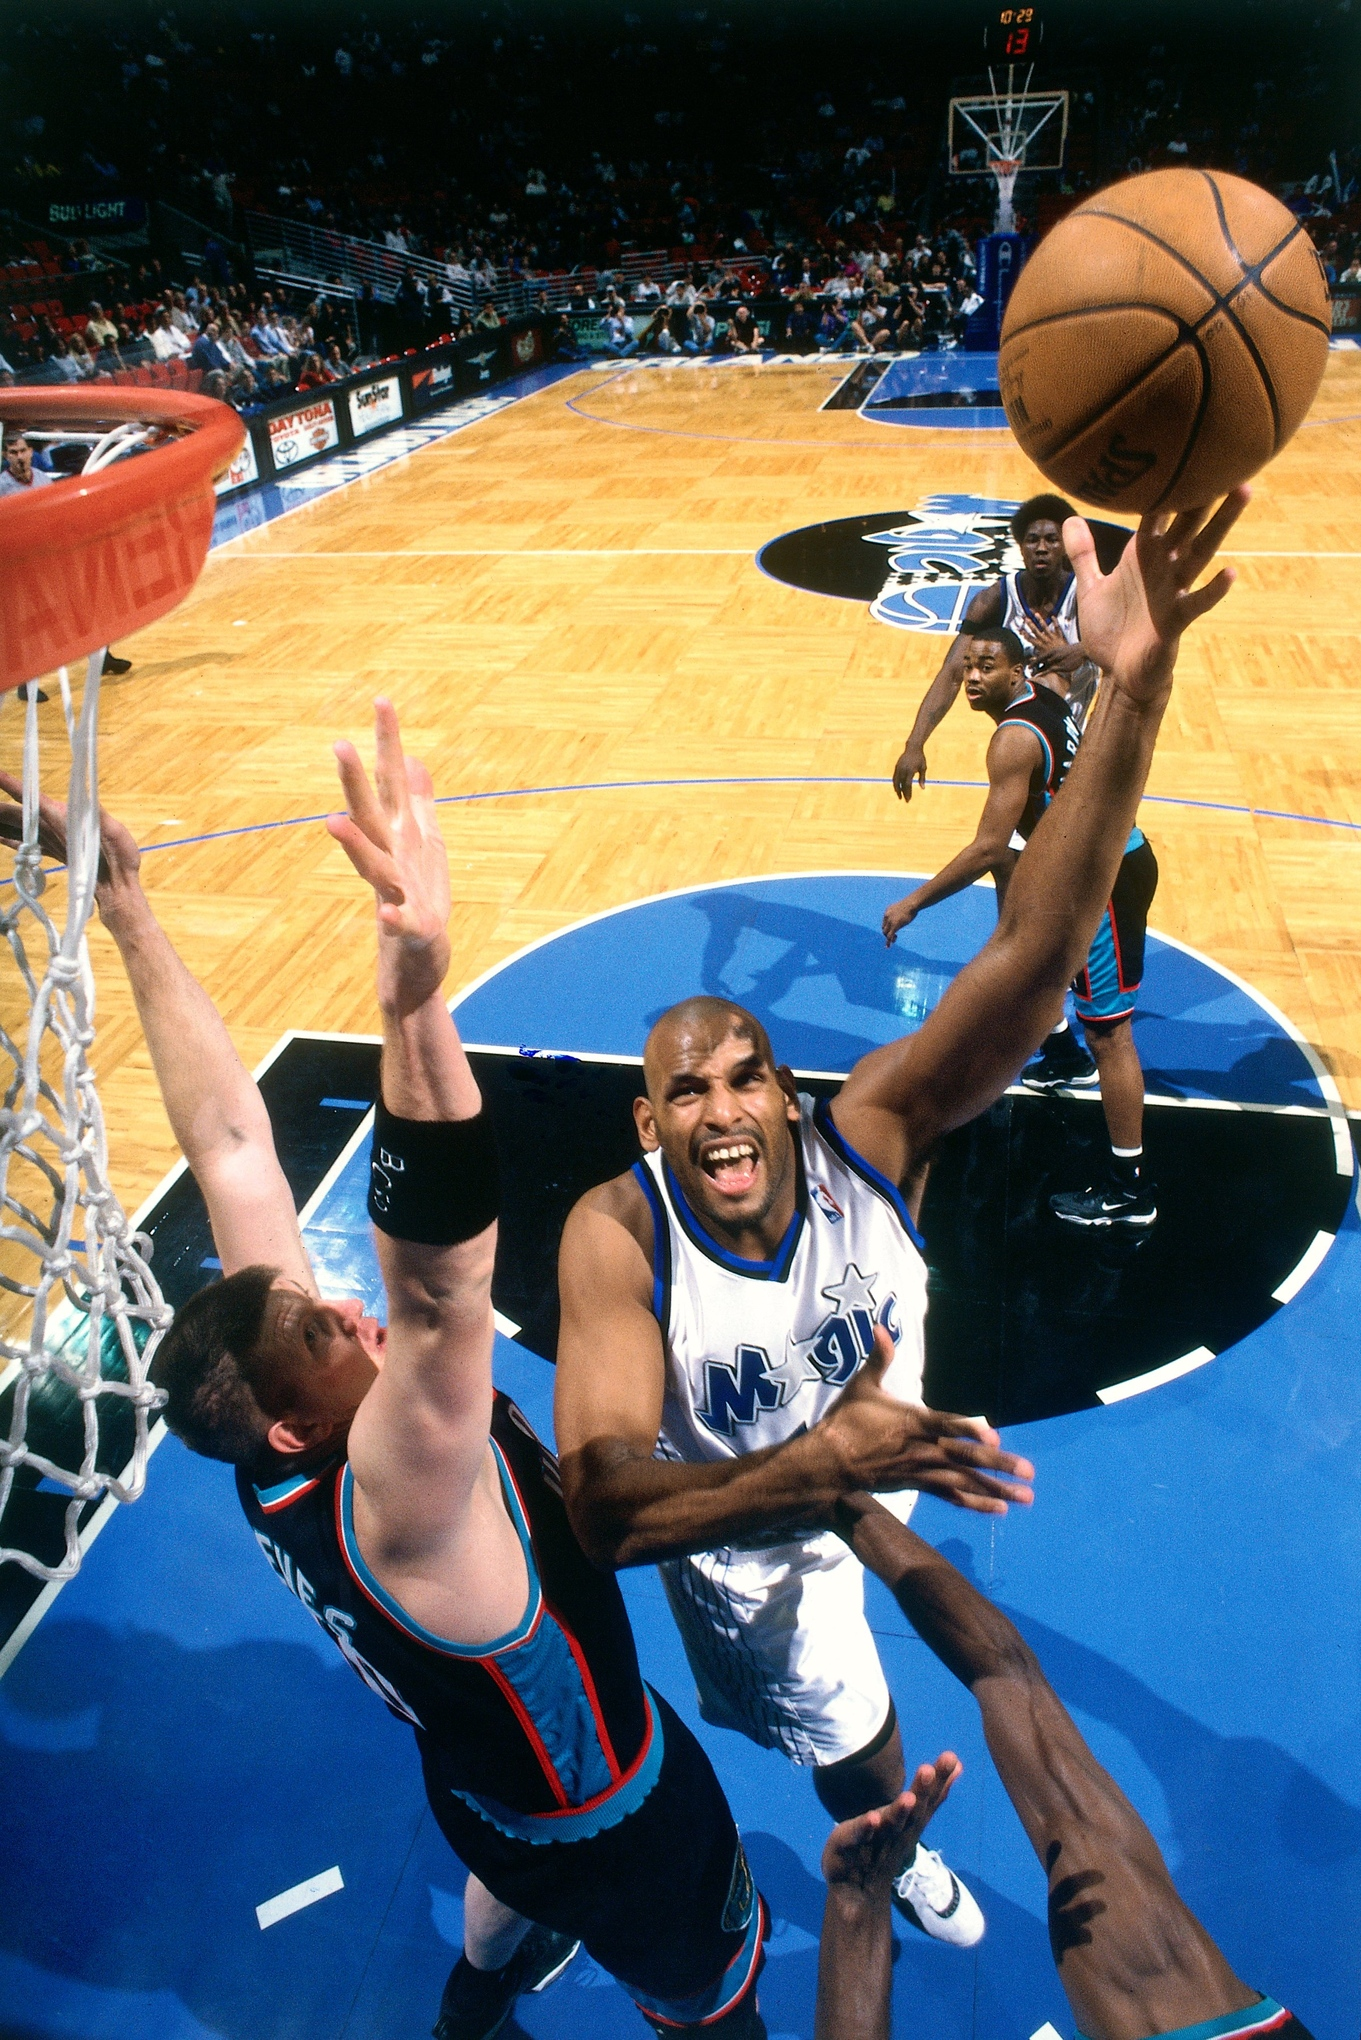 ORLANDO, FL - 2000: John Amaechi #13 of the Orlando Magic shoots against Bryant Reeves #50 of the Vancouver Grizzlies during a game played in 2000 at the TD Waterhouse Center in Orlando, Florida.